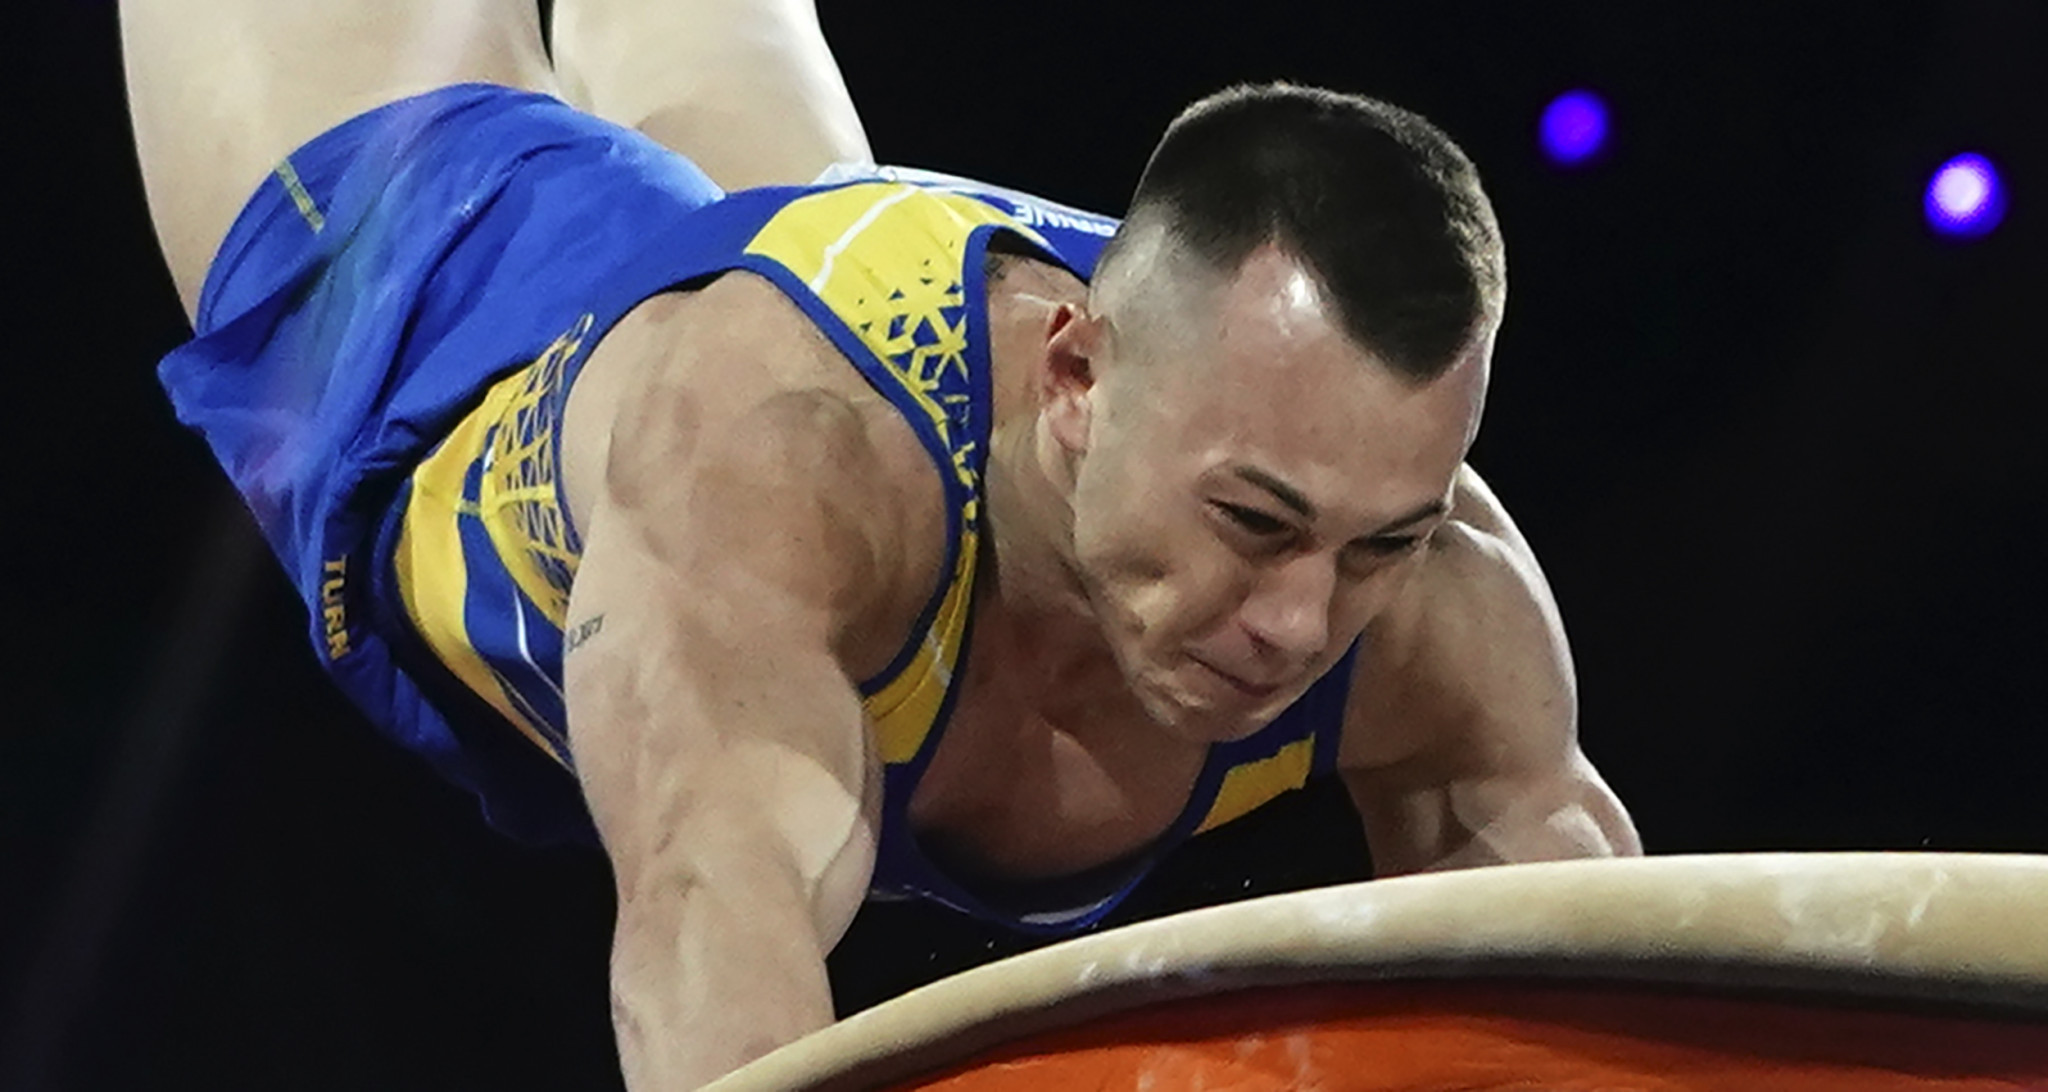 Japanese and Ukrainian gymnasts dominate final day of FIG Apparatus World Cup in Cottbus